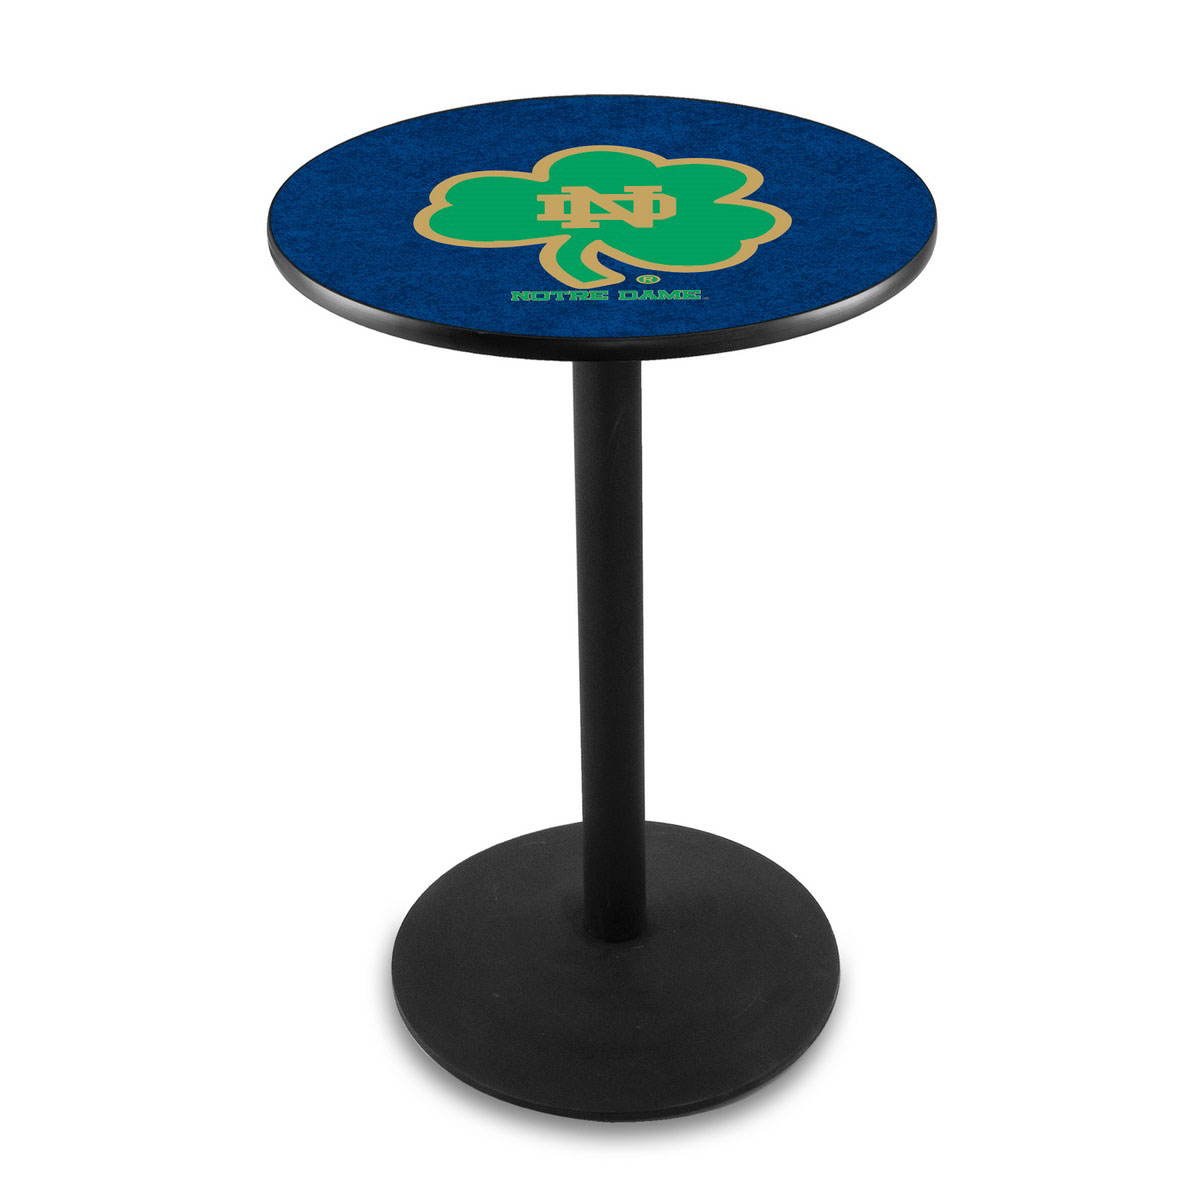 Superb-quality Notre Dame Shamrock Logo Pub Bar Table Round Stand Product Photo